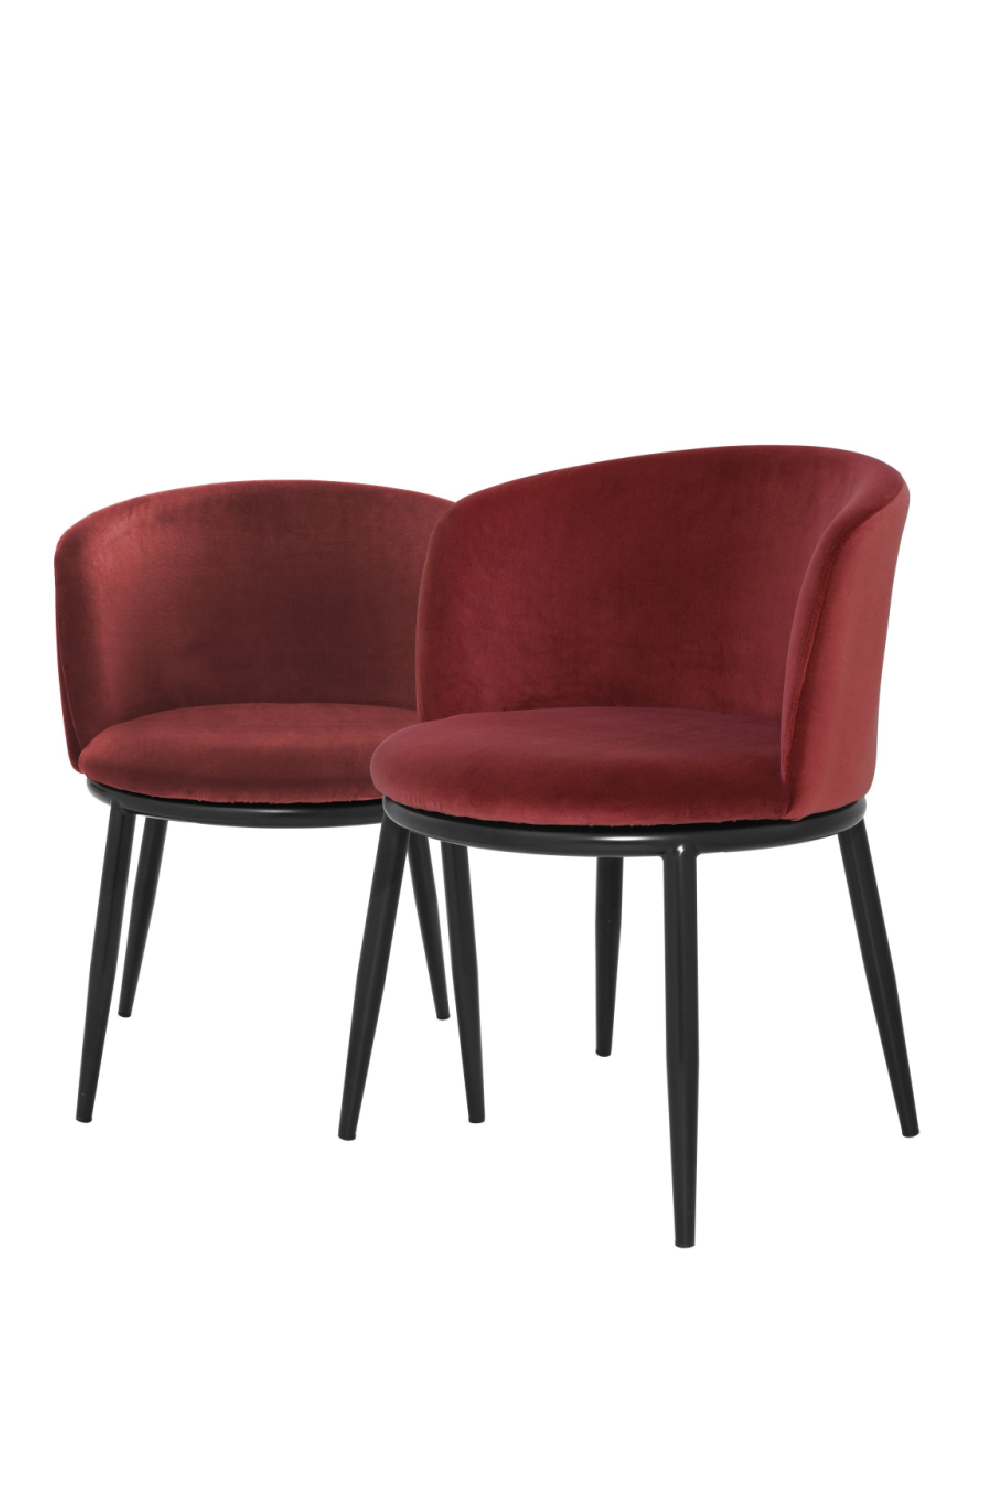 Wine Red Dining Chair Set Of 2 | Eichholtz Filmore